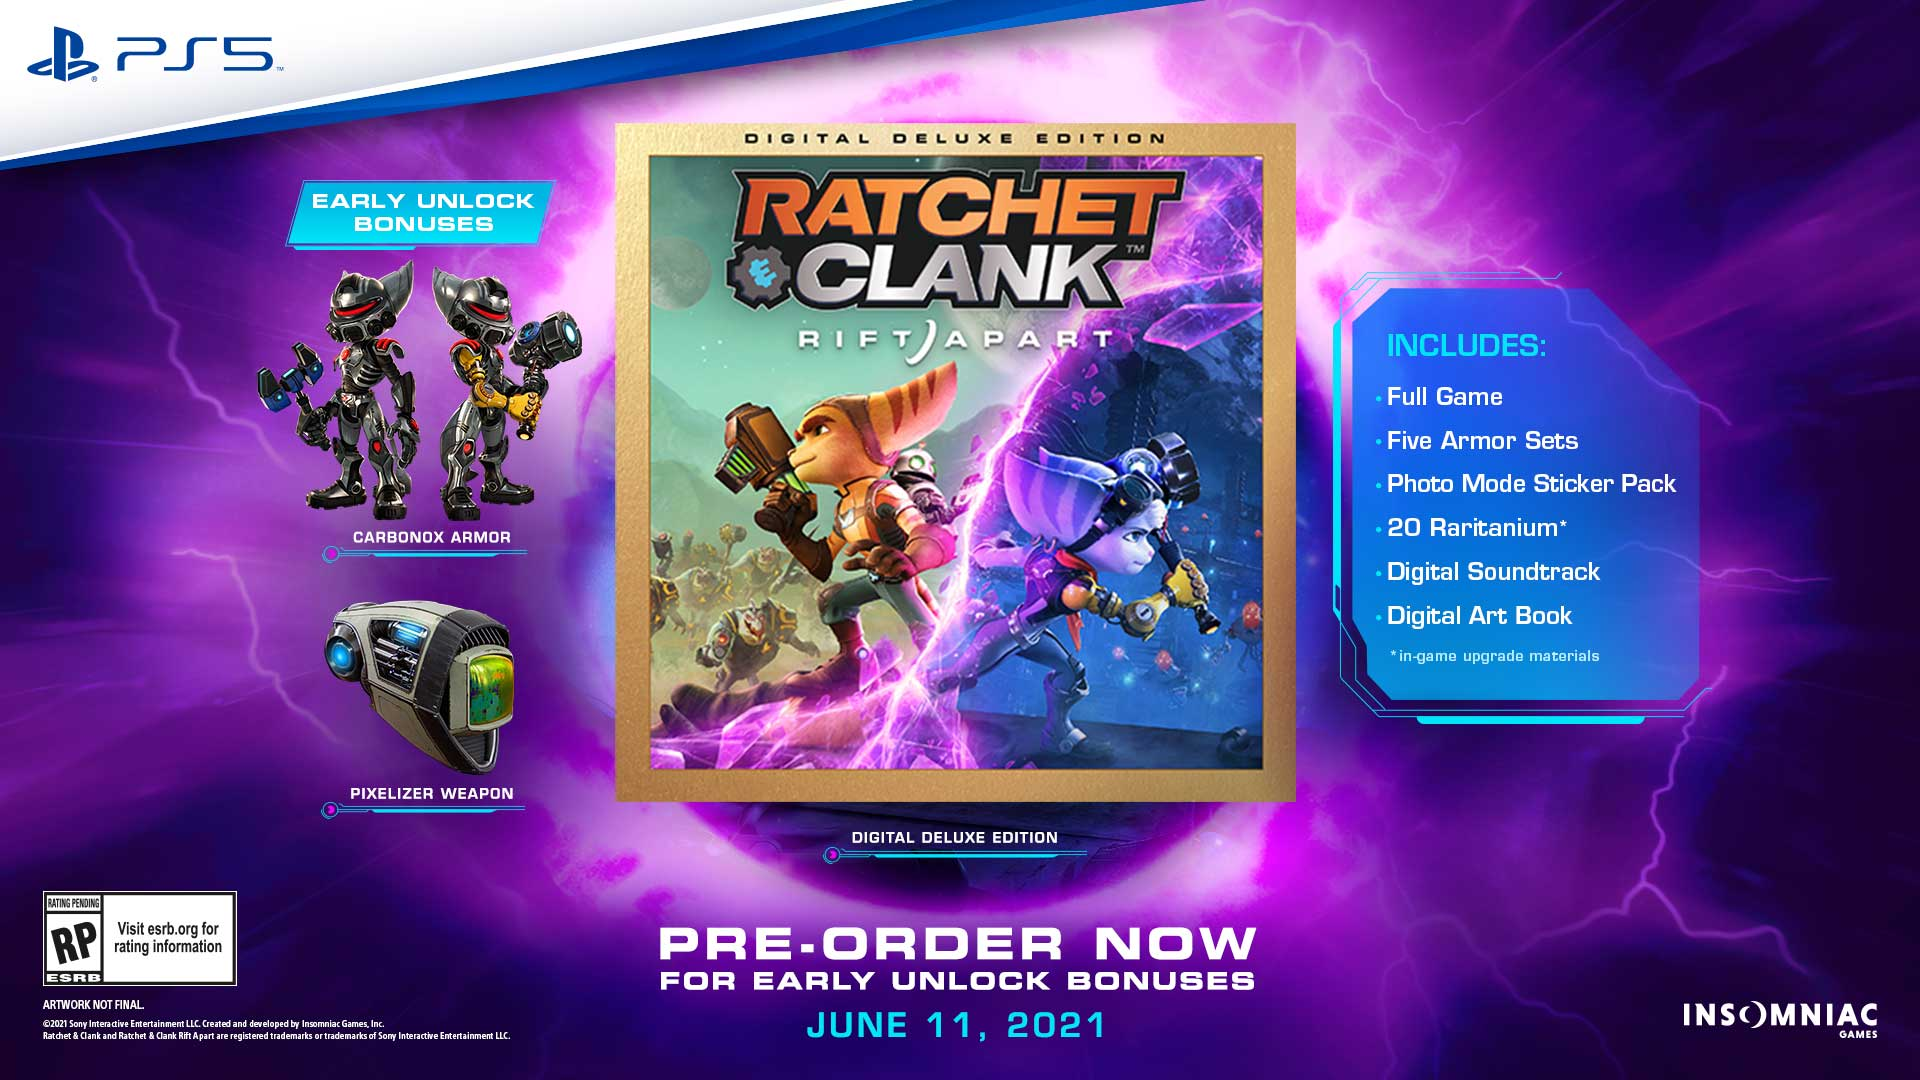 PS5 Ratchet and Clank: A Rift Apart